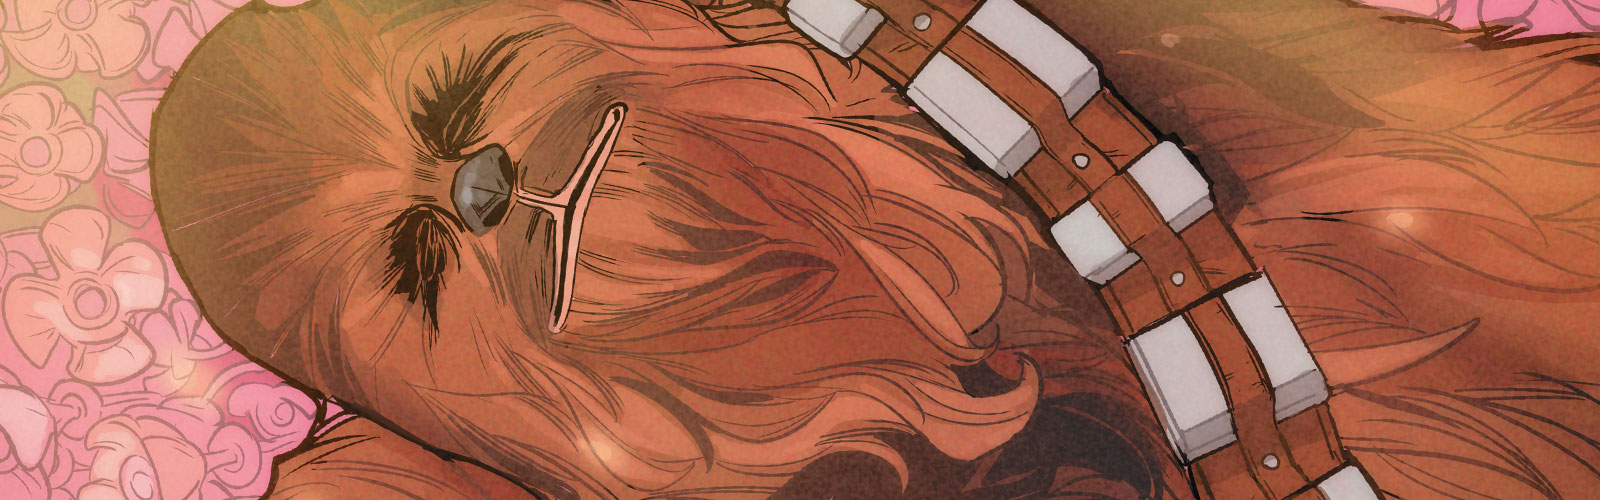 New Releases - 14-10-15: Chewbacca